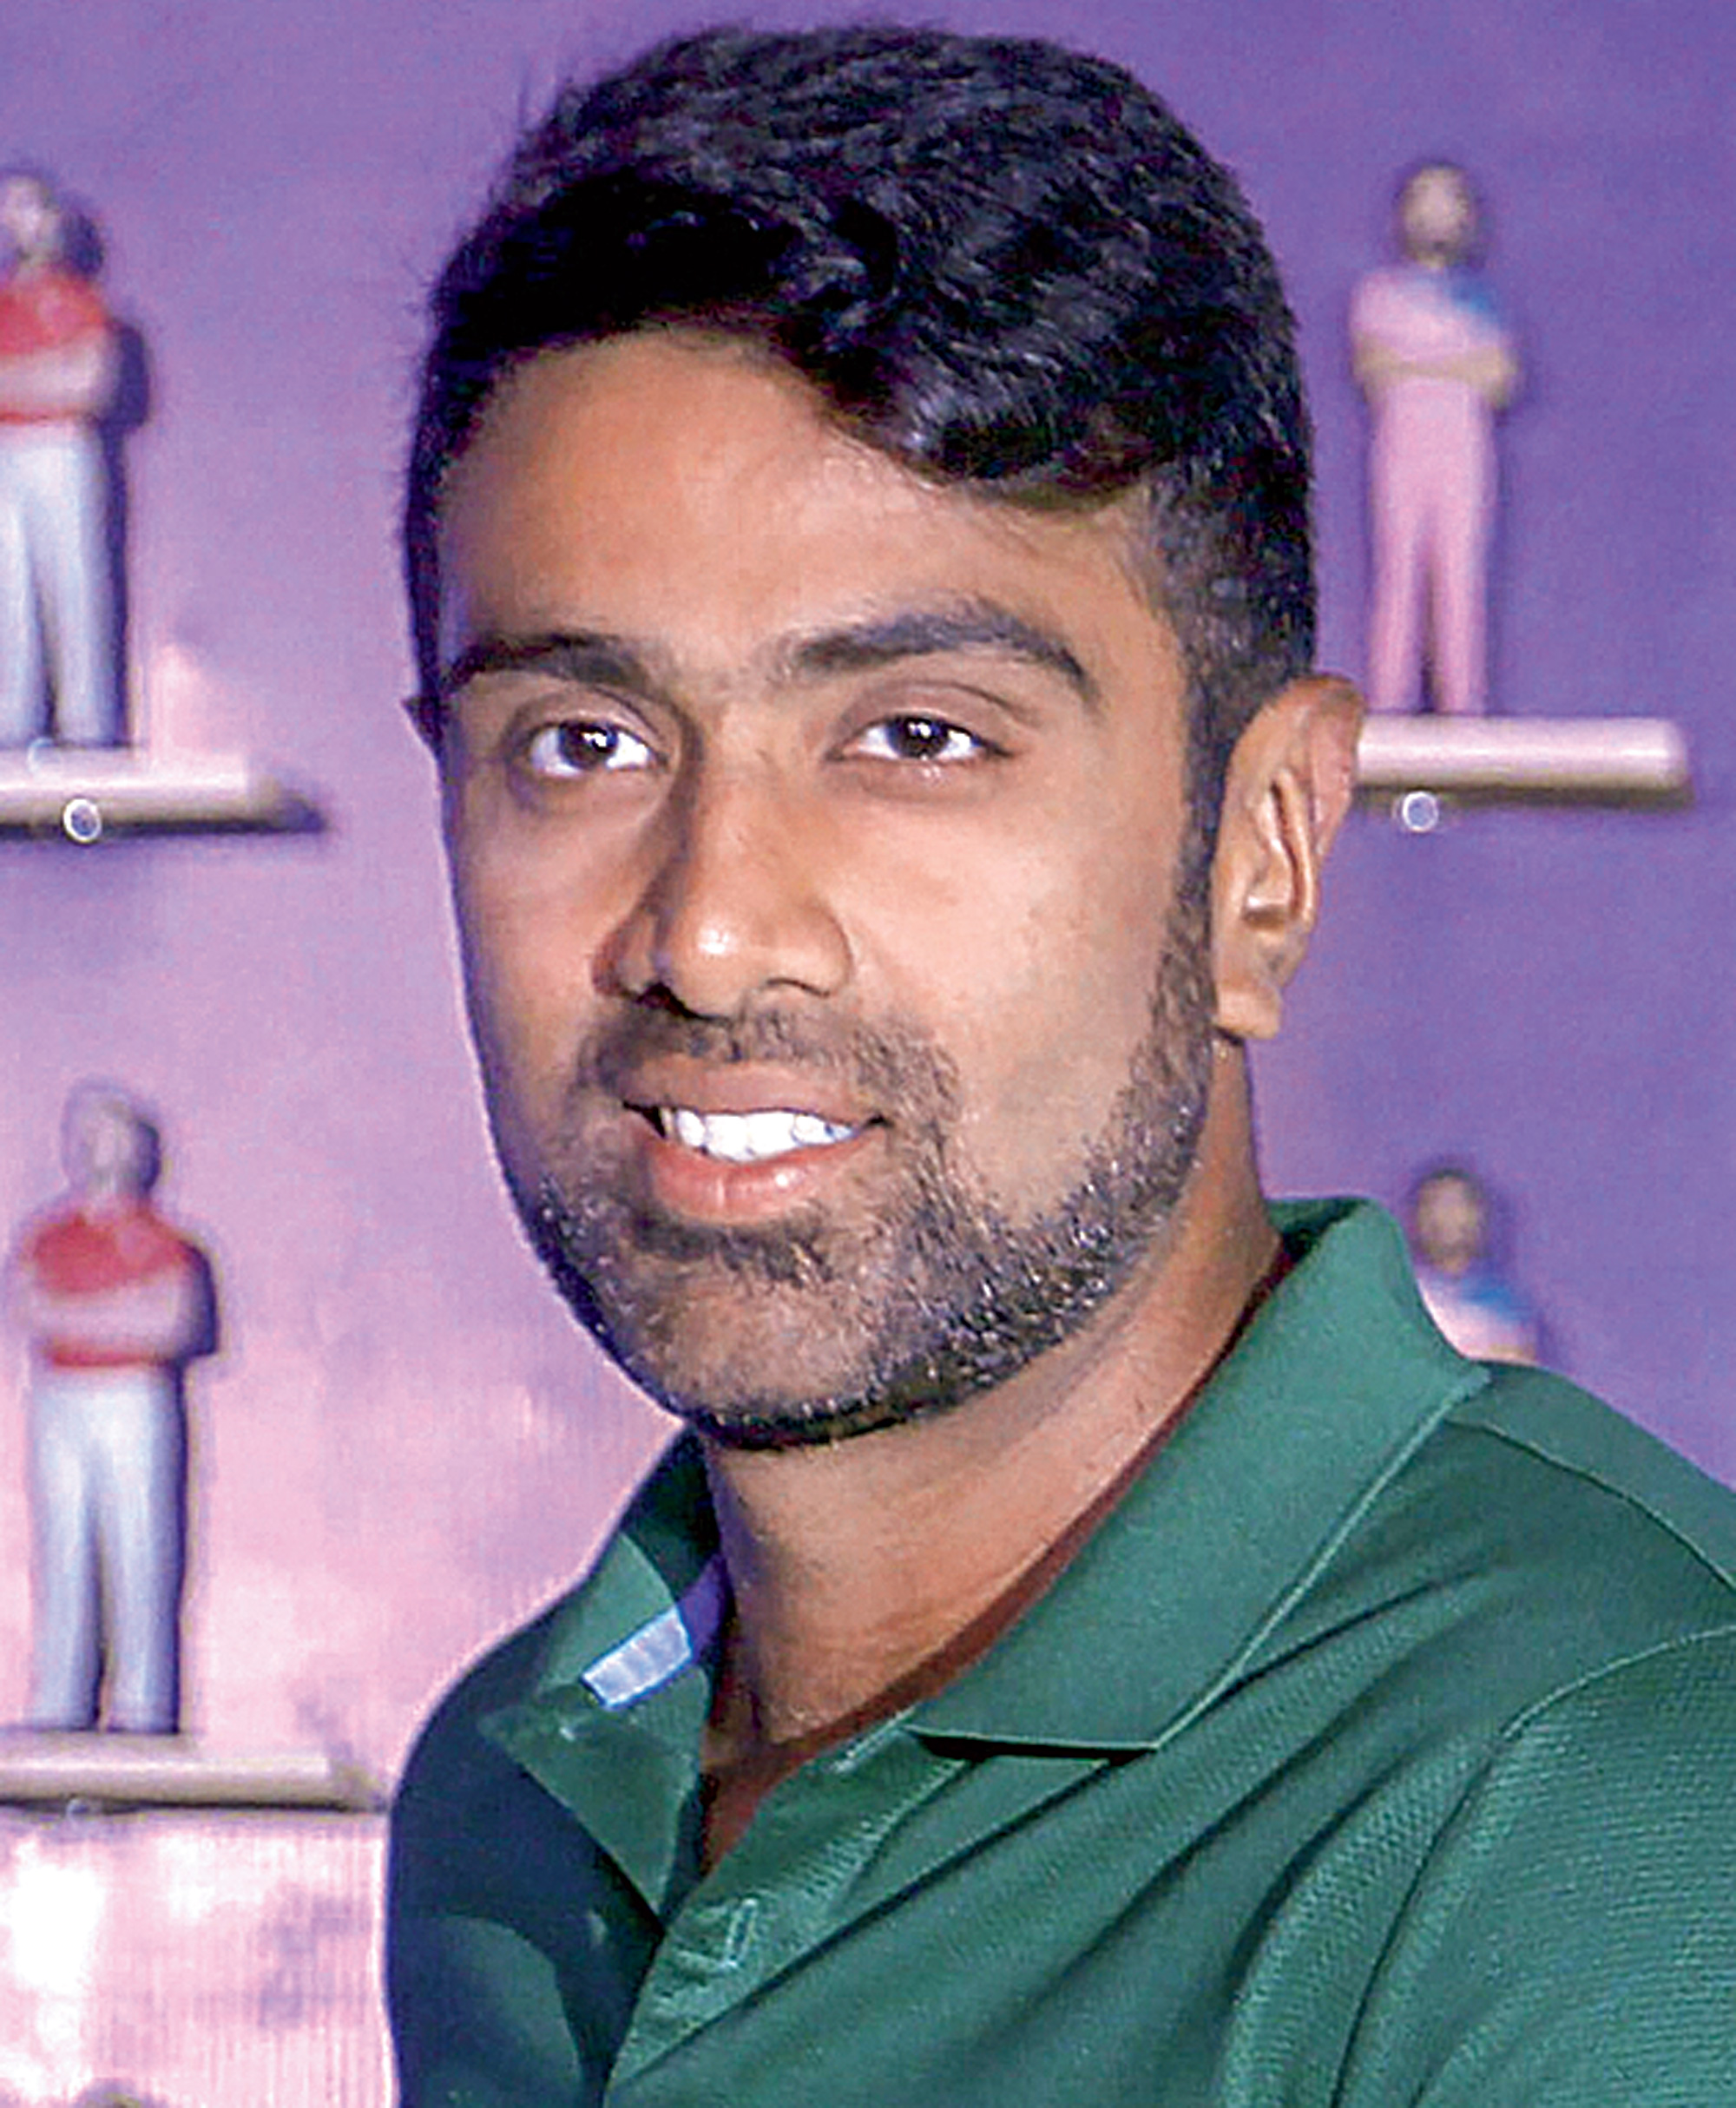 Ashwin agreed that time away from top-level cricket has been very difficult for him